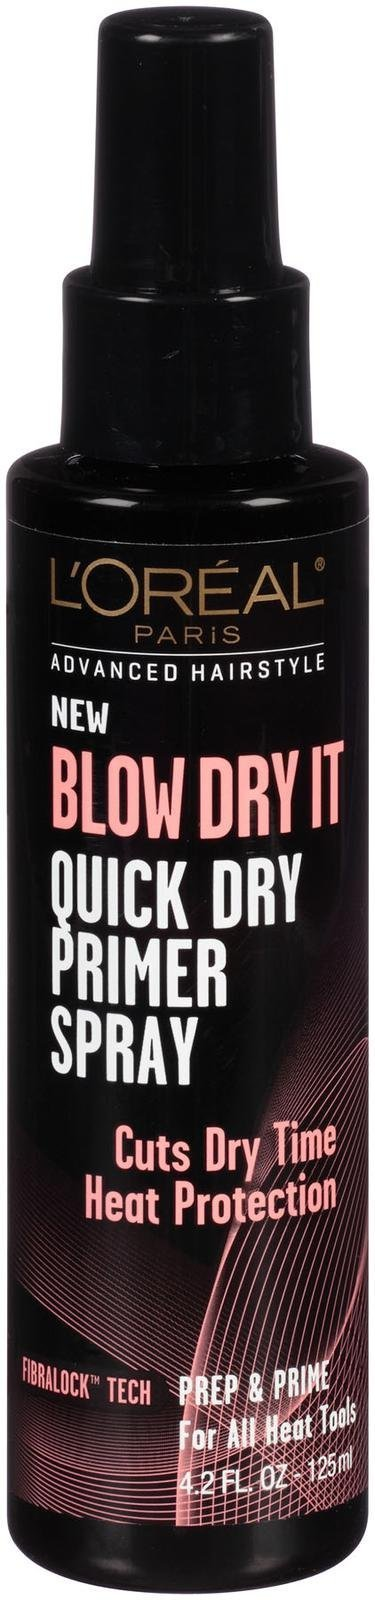 L'Oréal Paris Advanced Hairstyle BLOW DRY IT Quick Dry Primer Spray, 4.2 fl. oz. (Packaging May Vary)